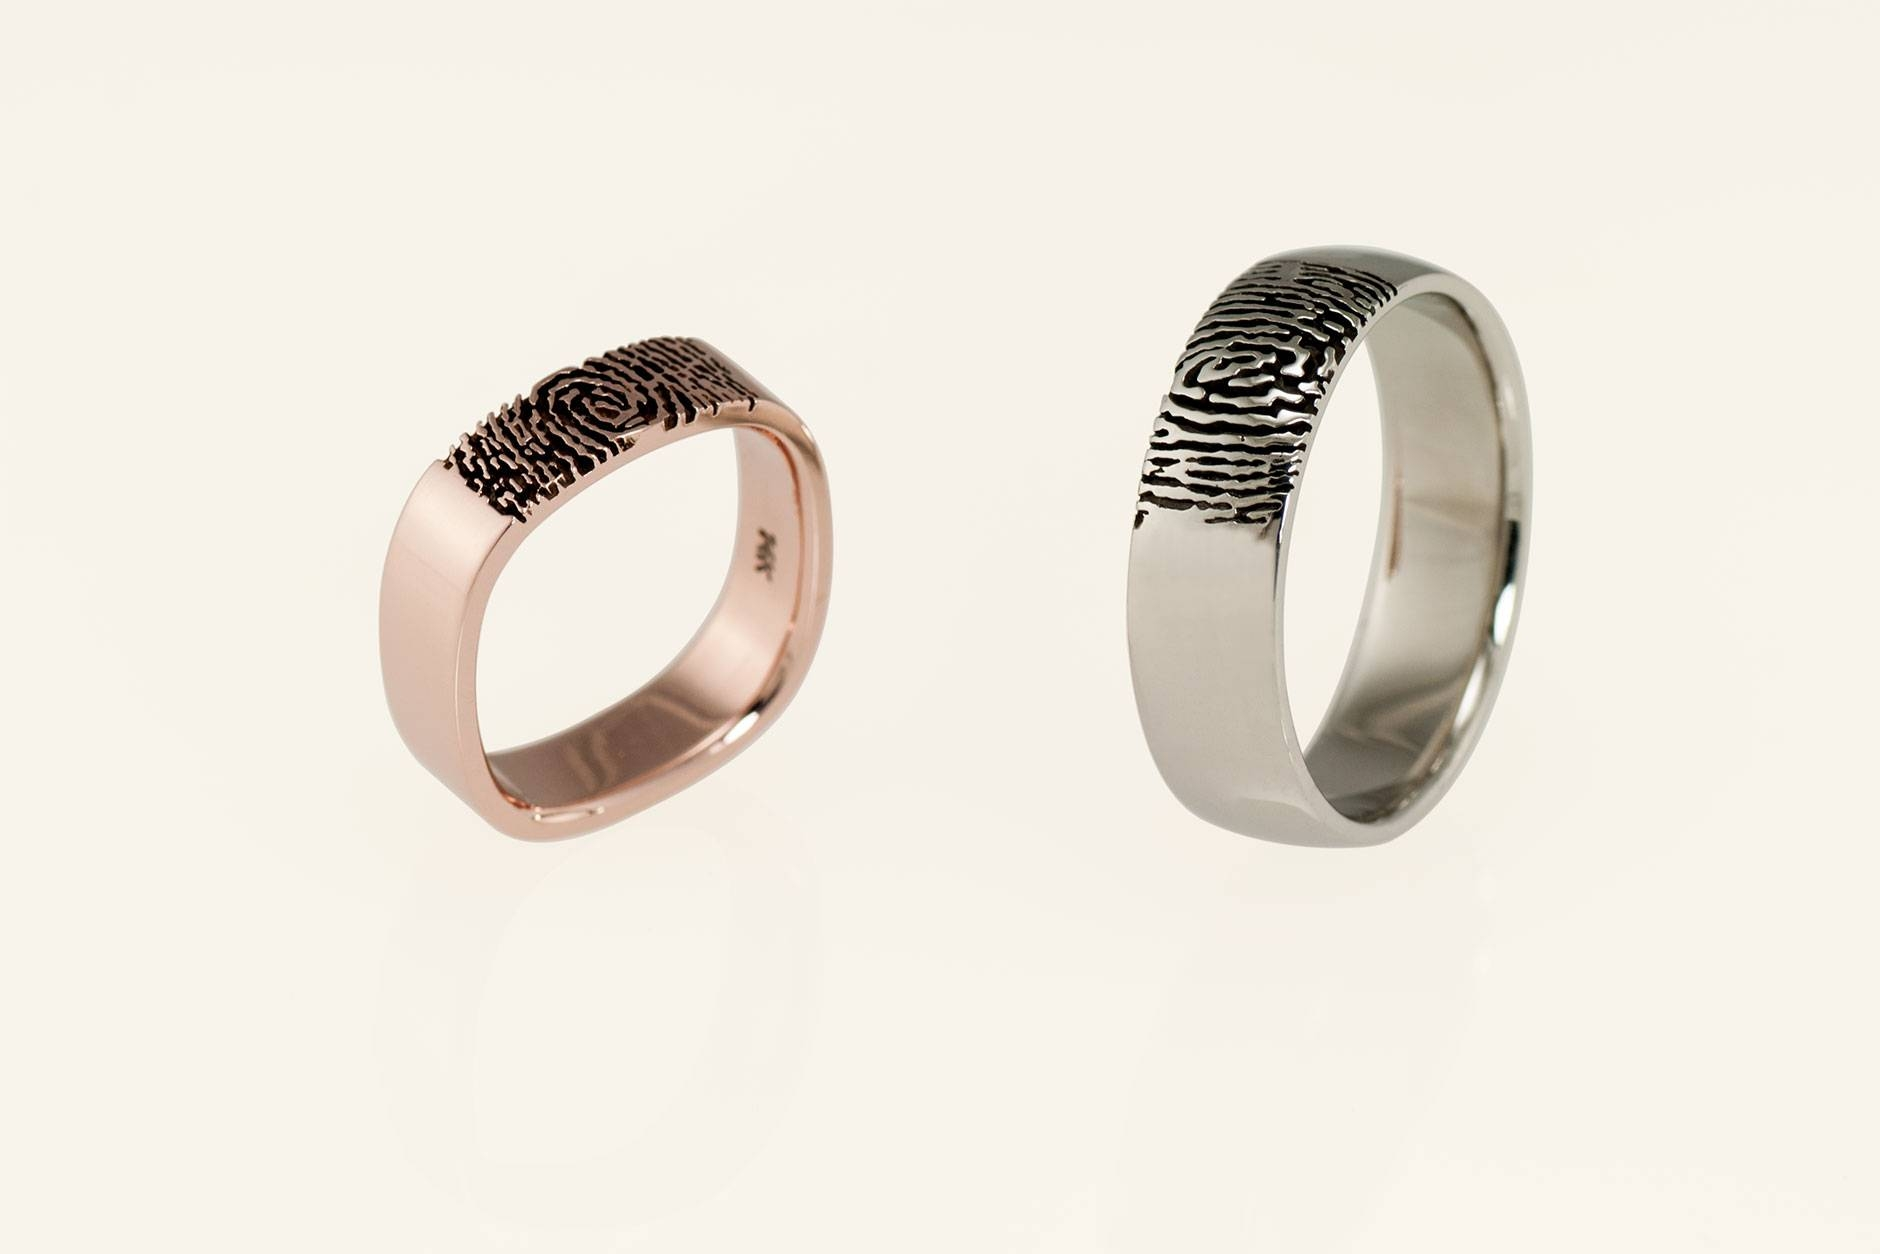 Custom Matching His Her Fingerprint Wedding Rings In 18K & 14K Throughout Fingerprint Wedding Rings (View 11 of 15)